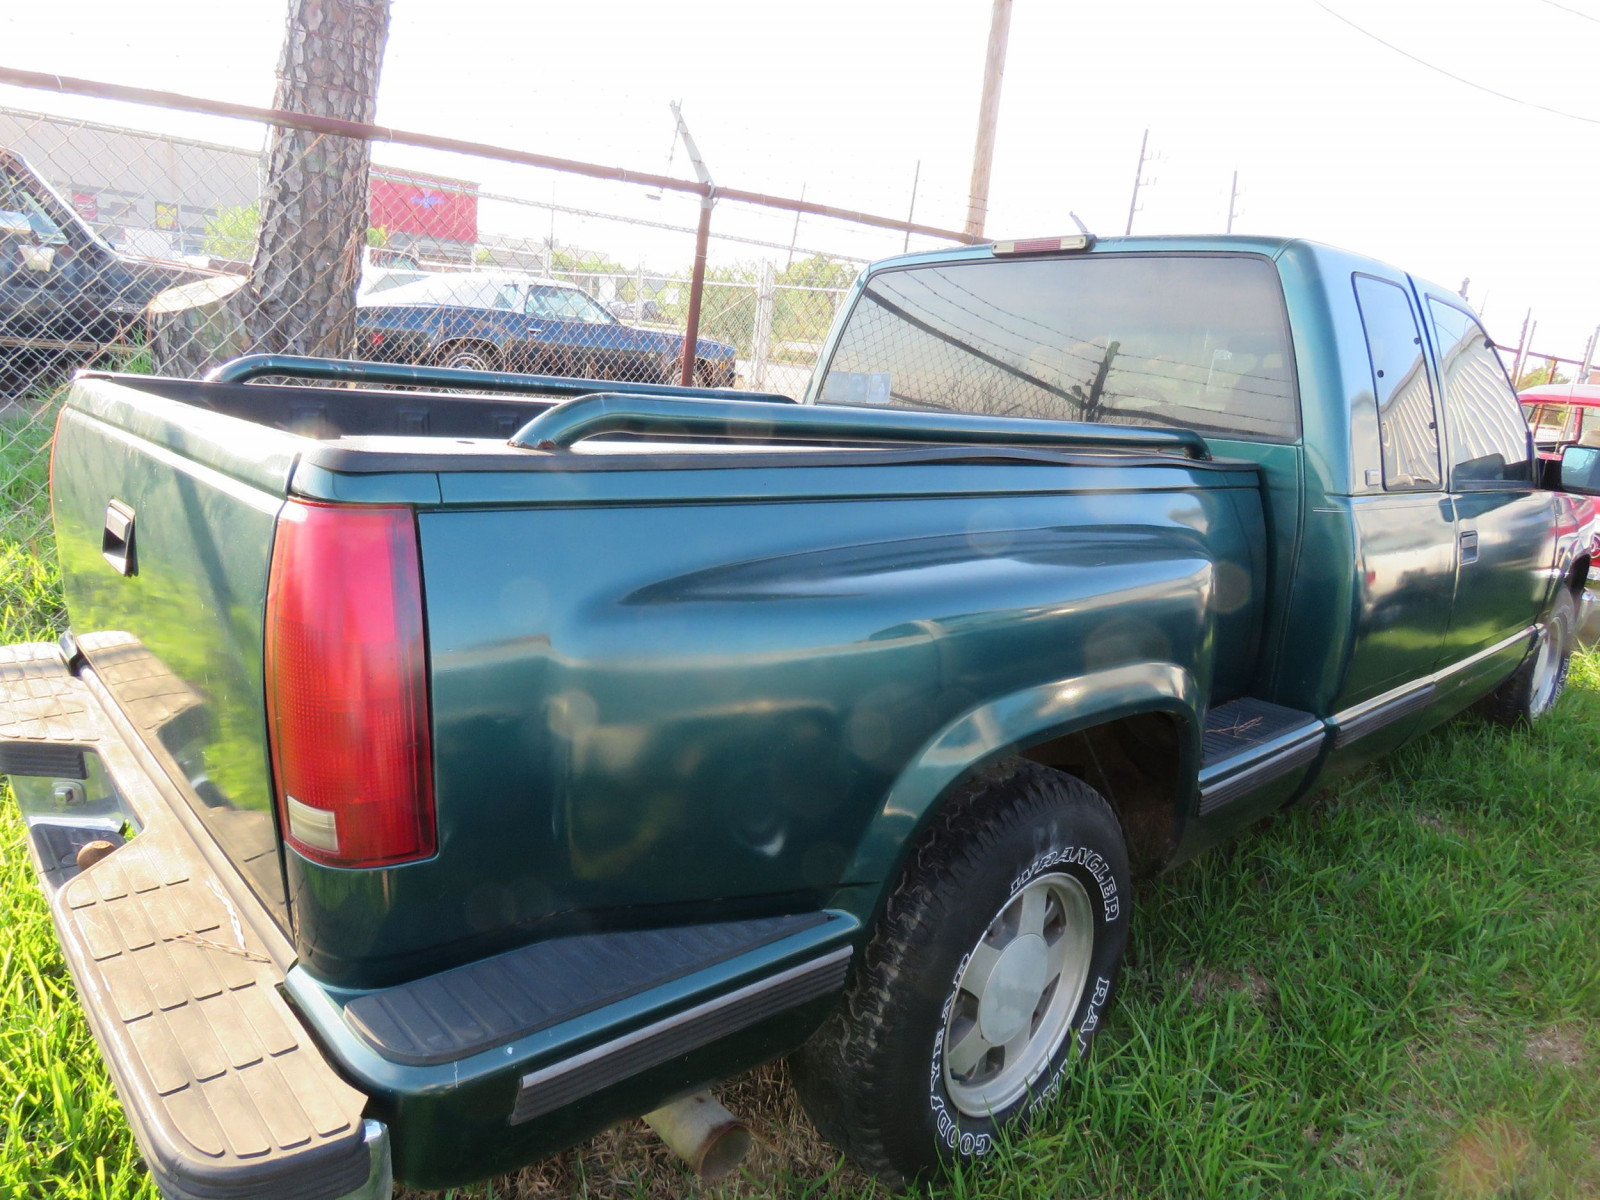 1995 Chevrolet Stepside Pickup - Image 4